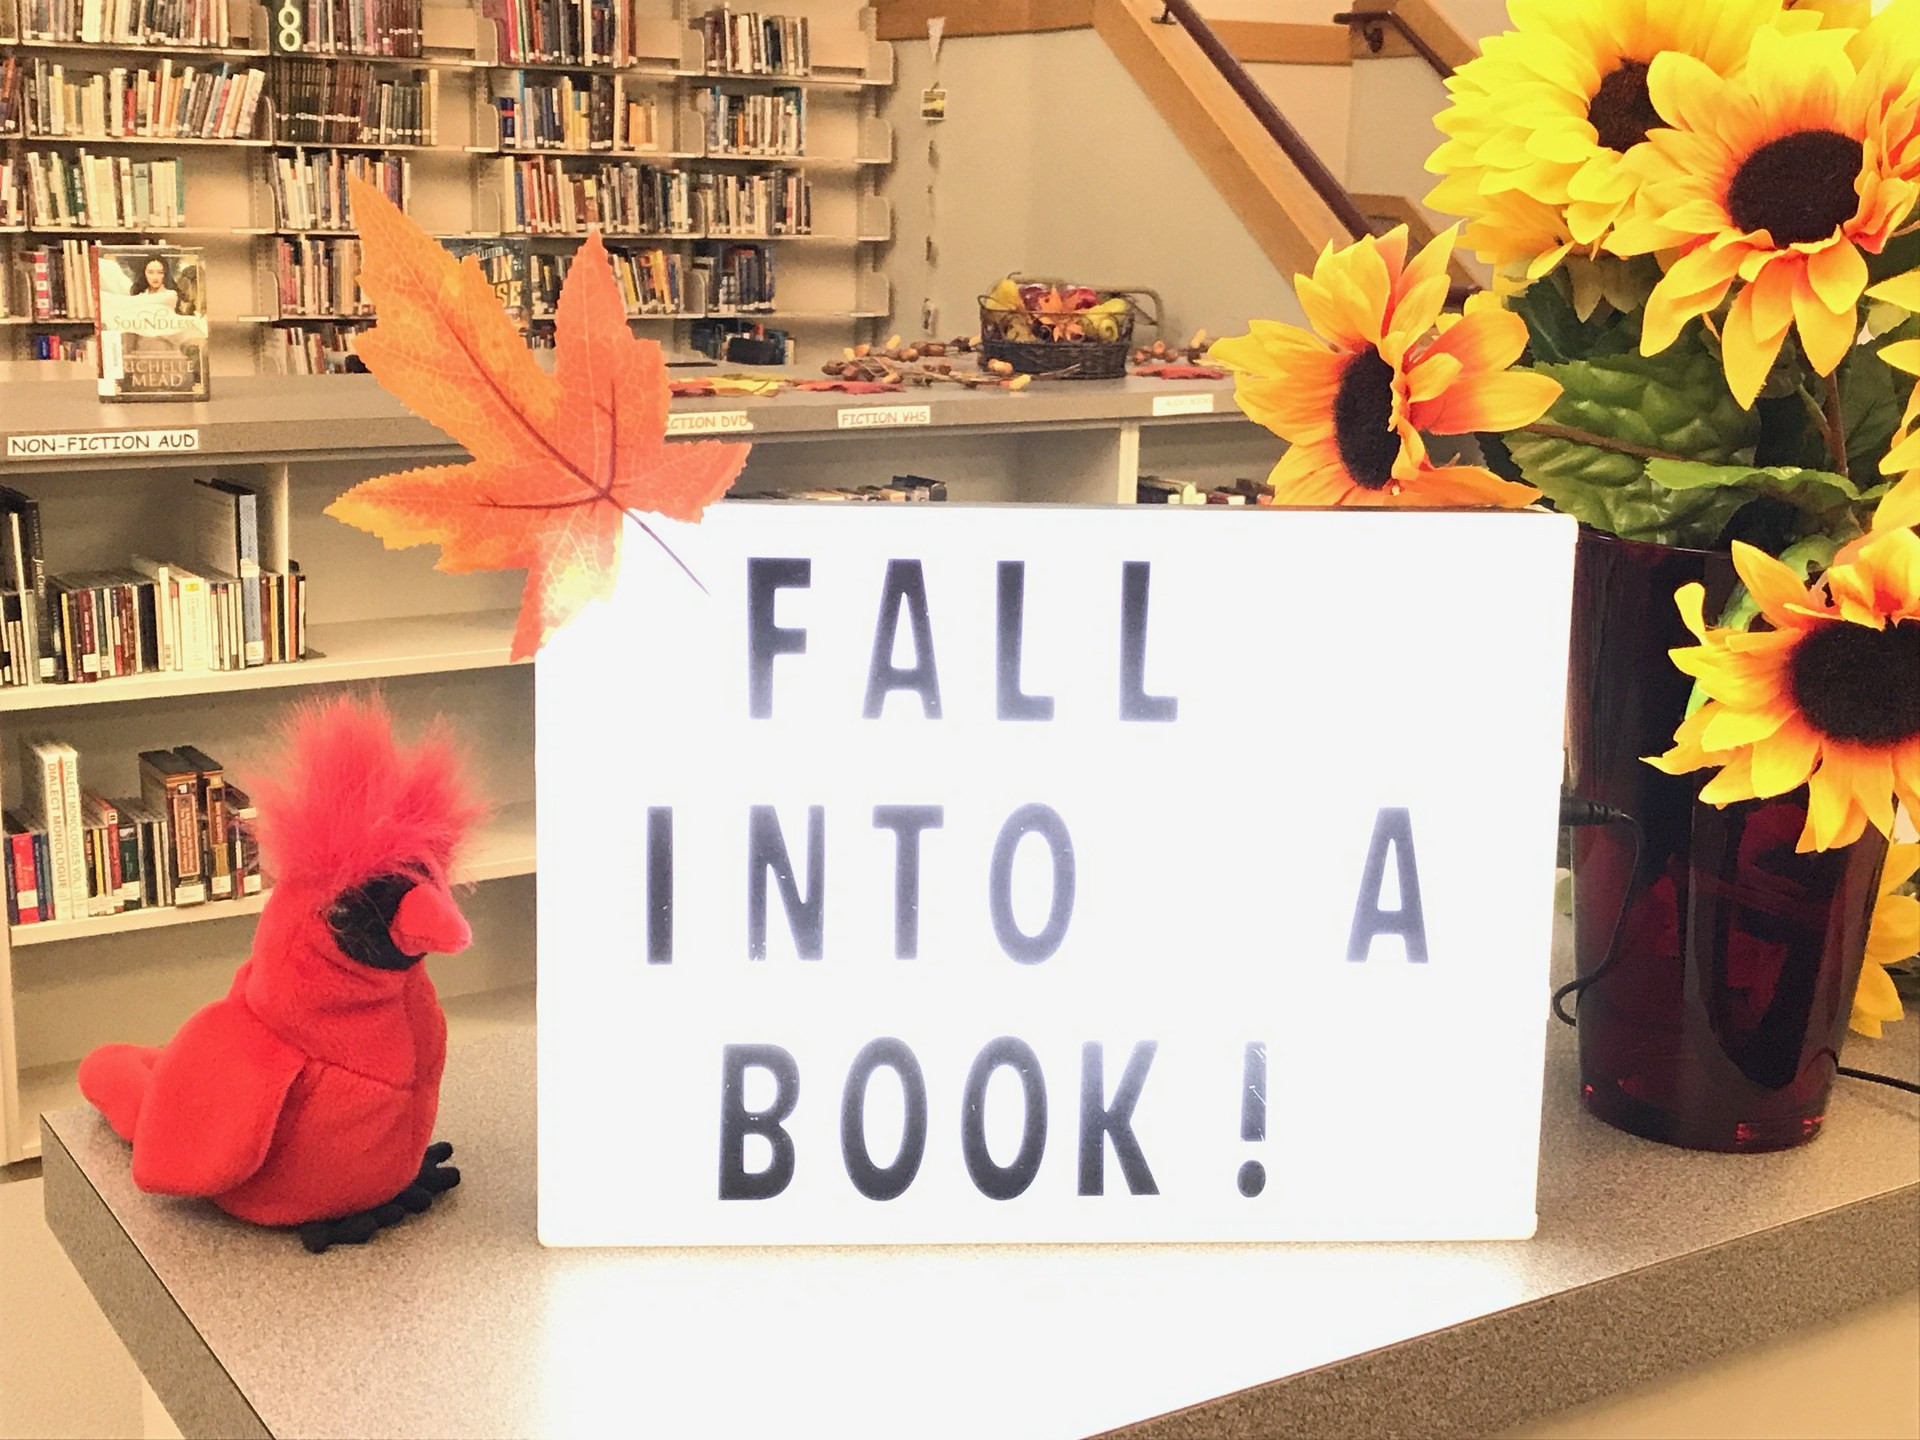 fall into a book sign